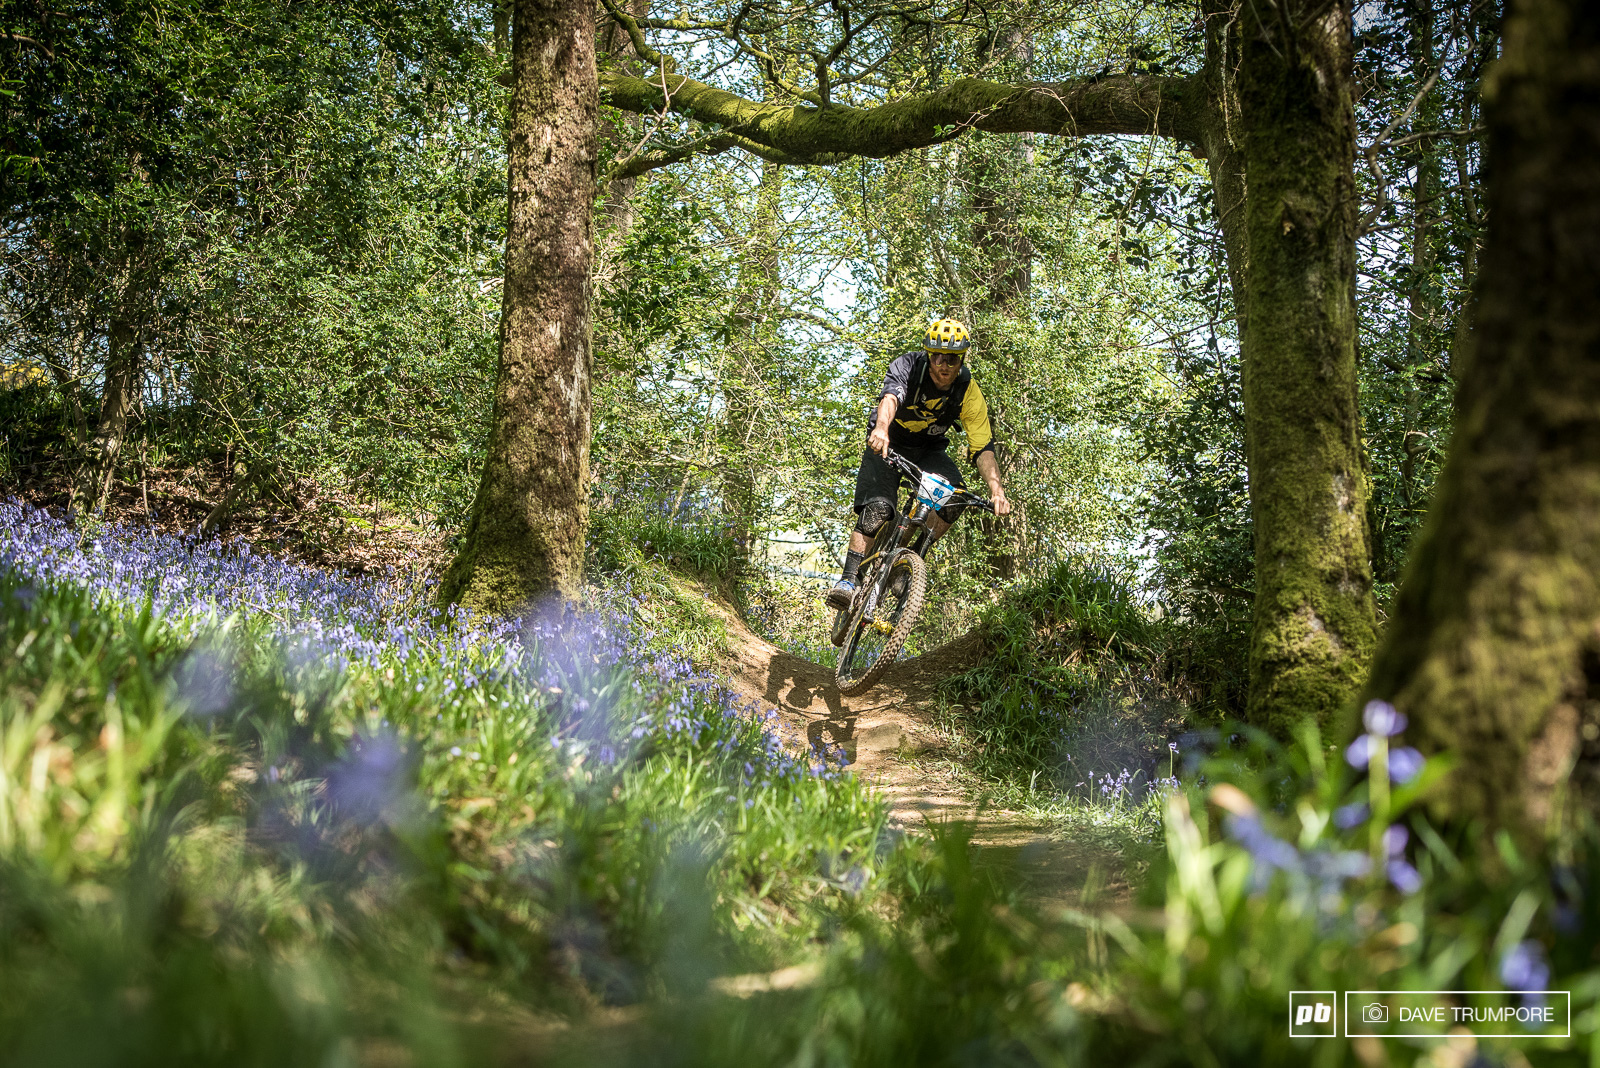 Joe Smith was another World Cup DH rider to smash it this weekend in 9th... Flat pedals and all.